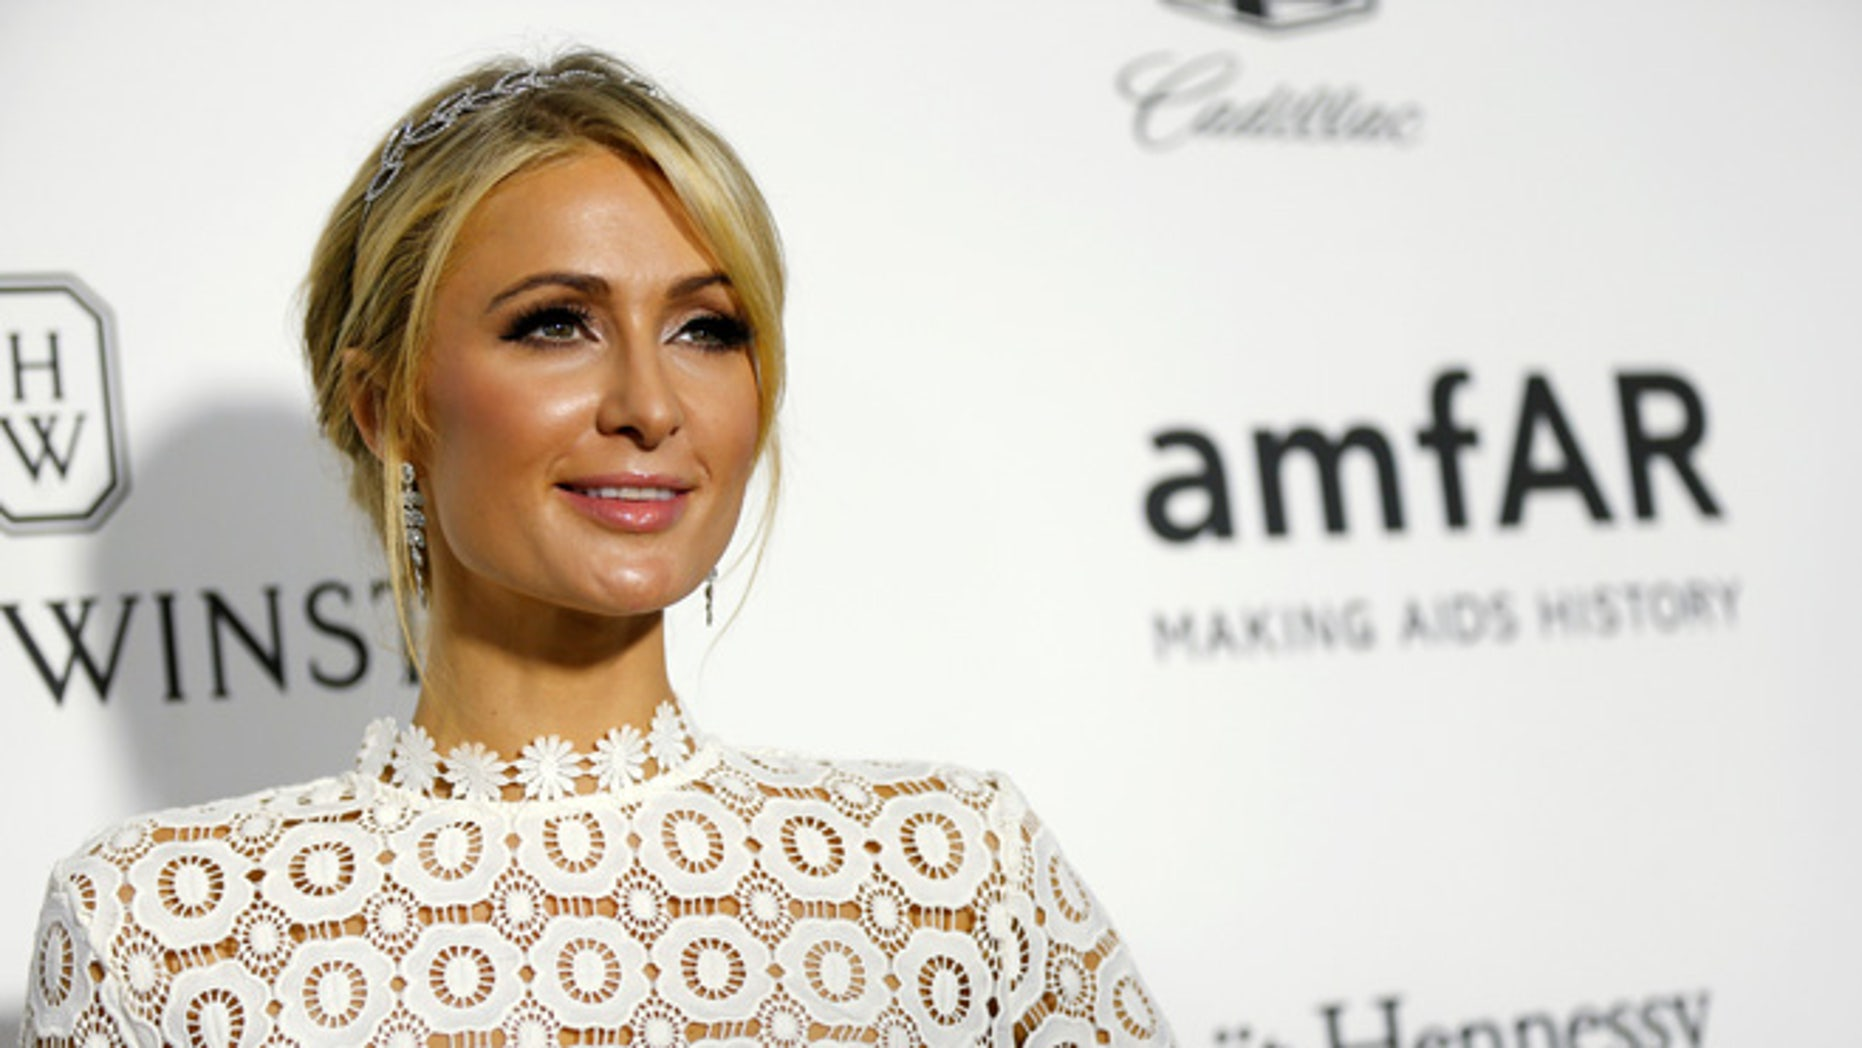 Paris Hilton says she's no longer interested in doing reality TV.